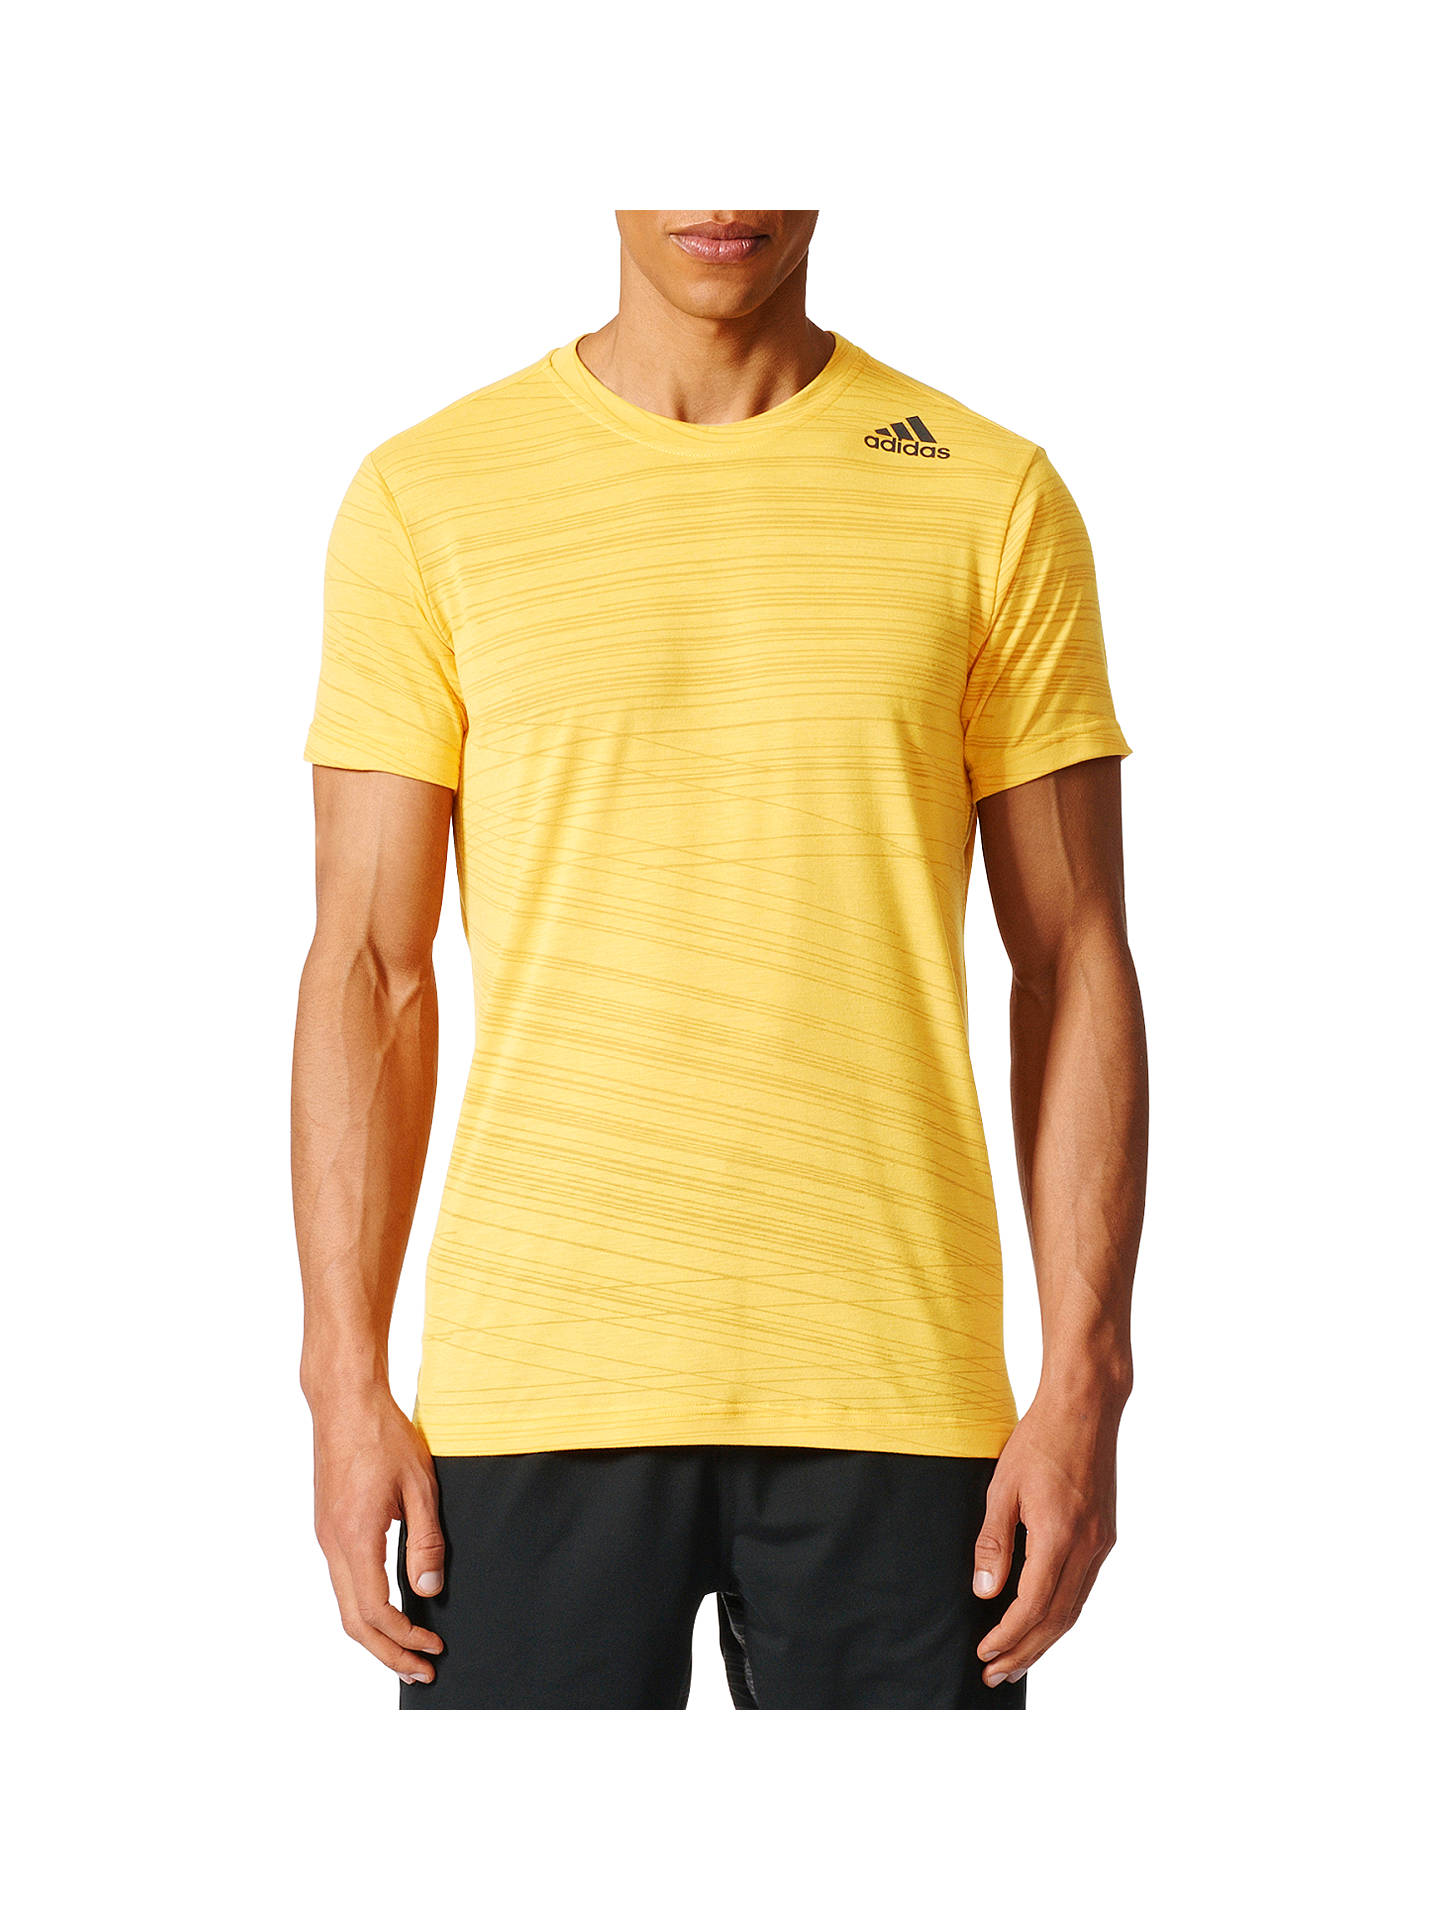 154cc6a140b Buy adidas Freelift Climacool Aeroknit T-Shirt, Yellow, L Online at  johnlewis.